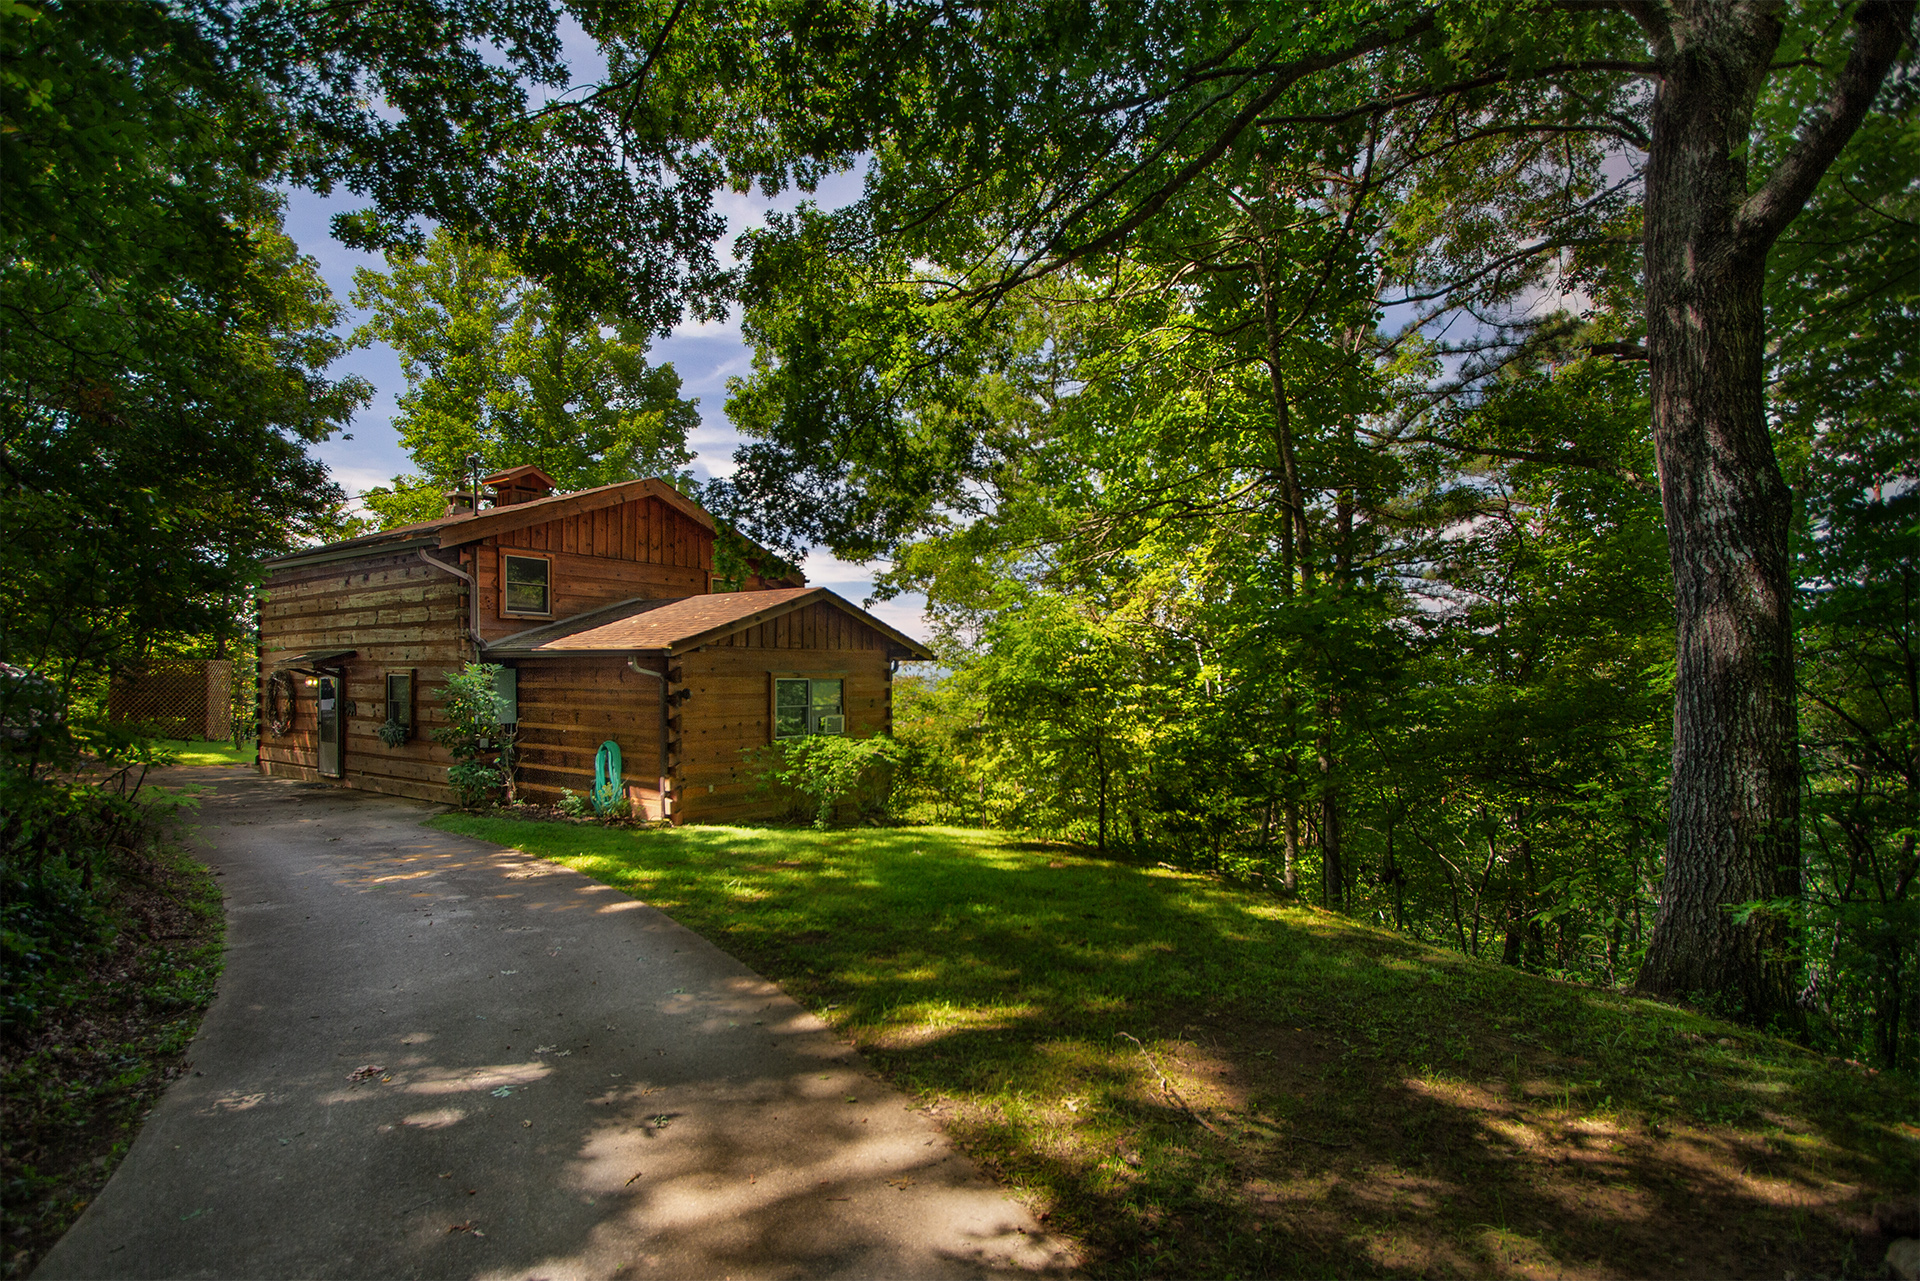 Grandpa 39 s smoky mountain log cabin vacation rental Cabin rental smokey mountains